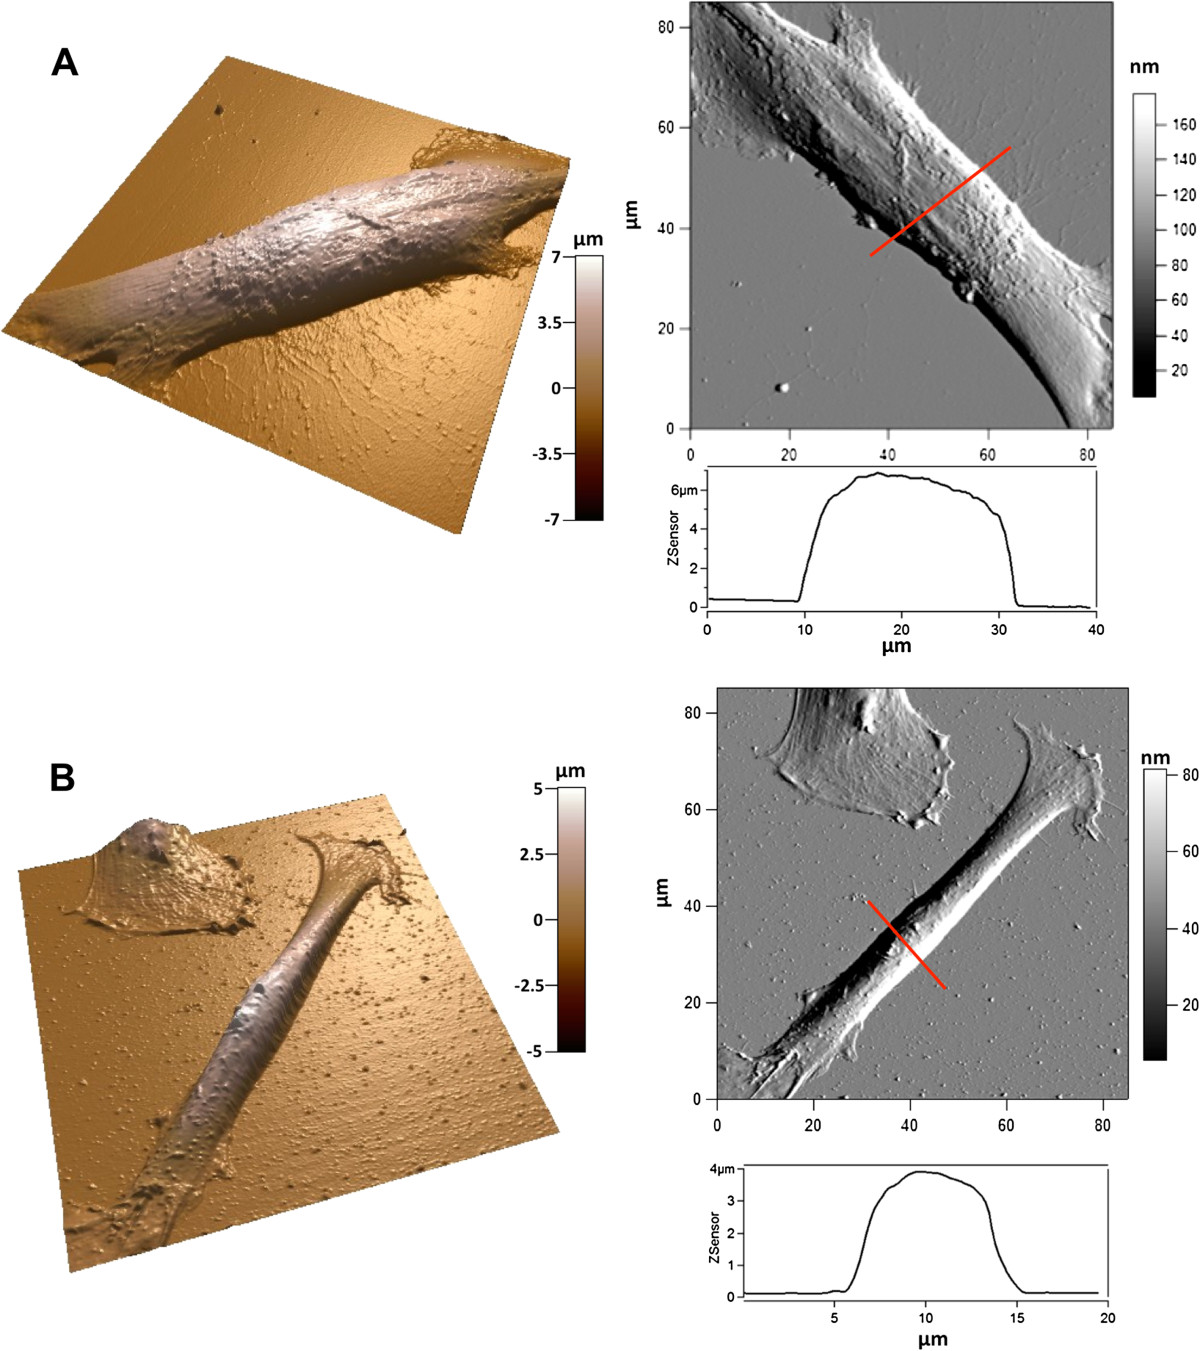 Initial stem cell adhesion on porous silicon surface